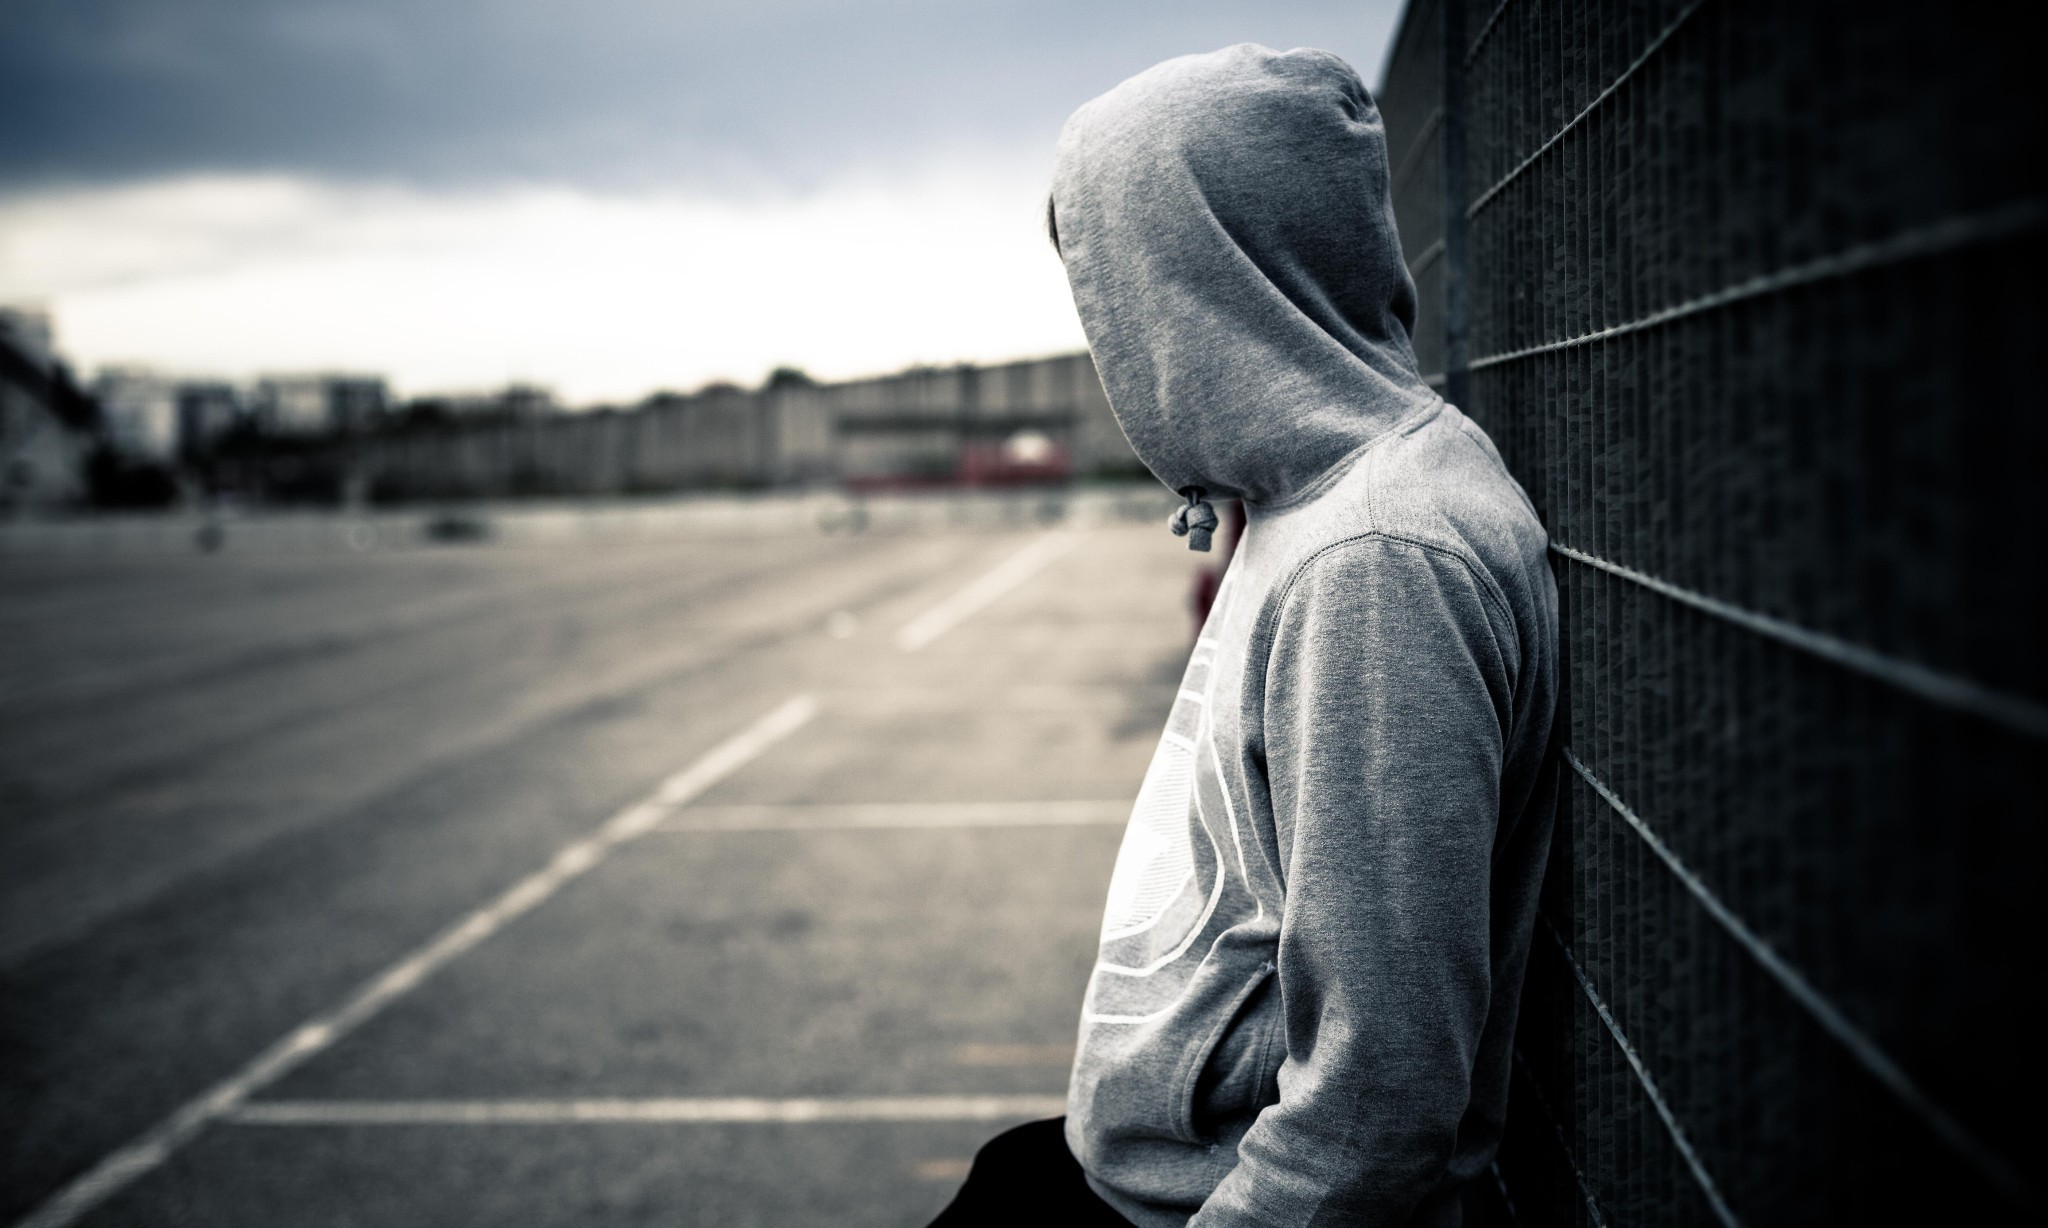 A quarter of young men self-harm to cope with depression, says survey